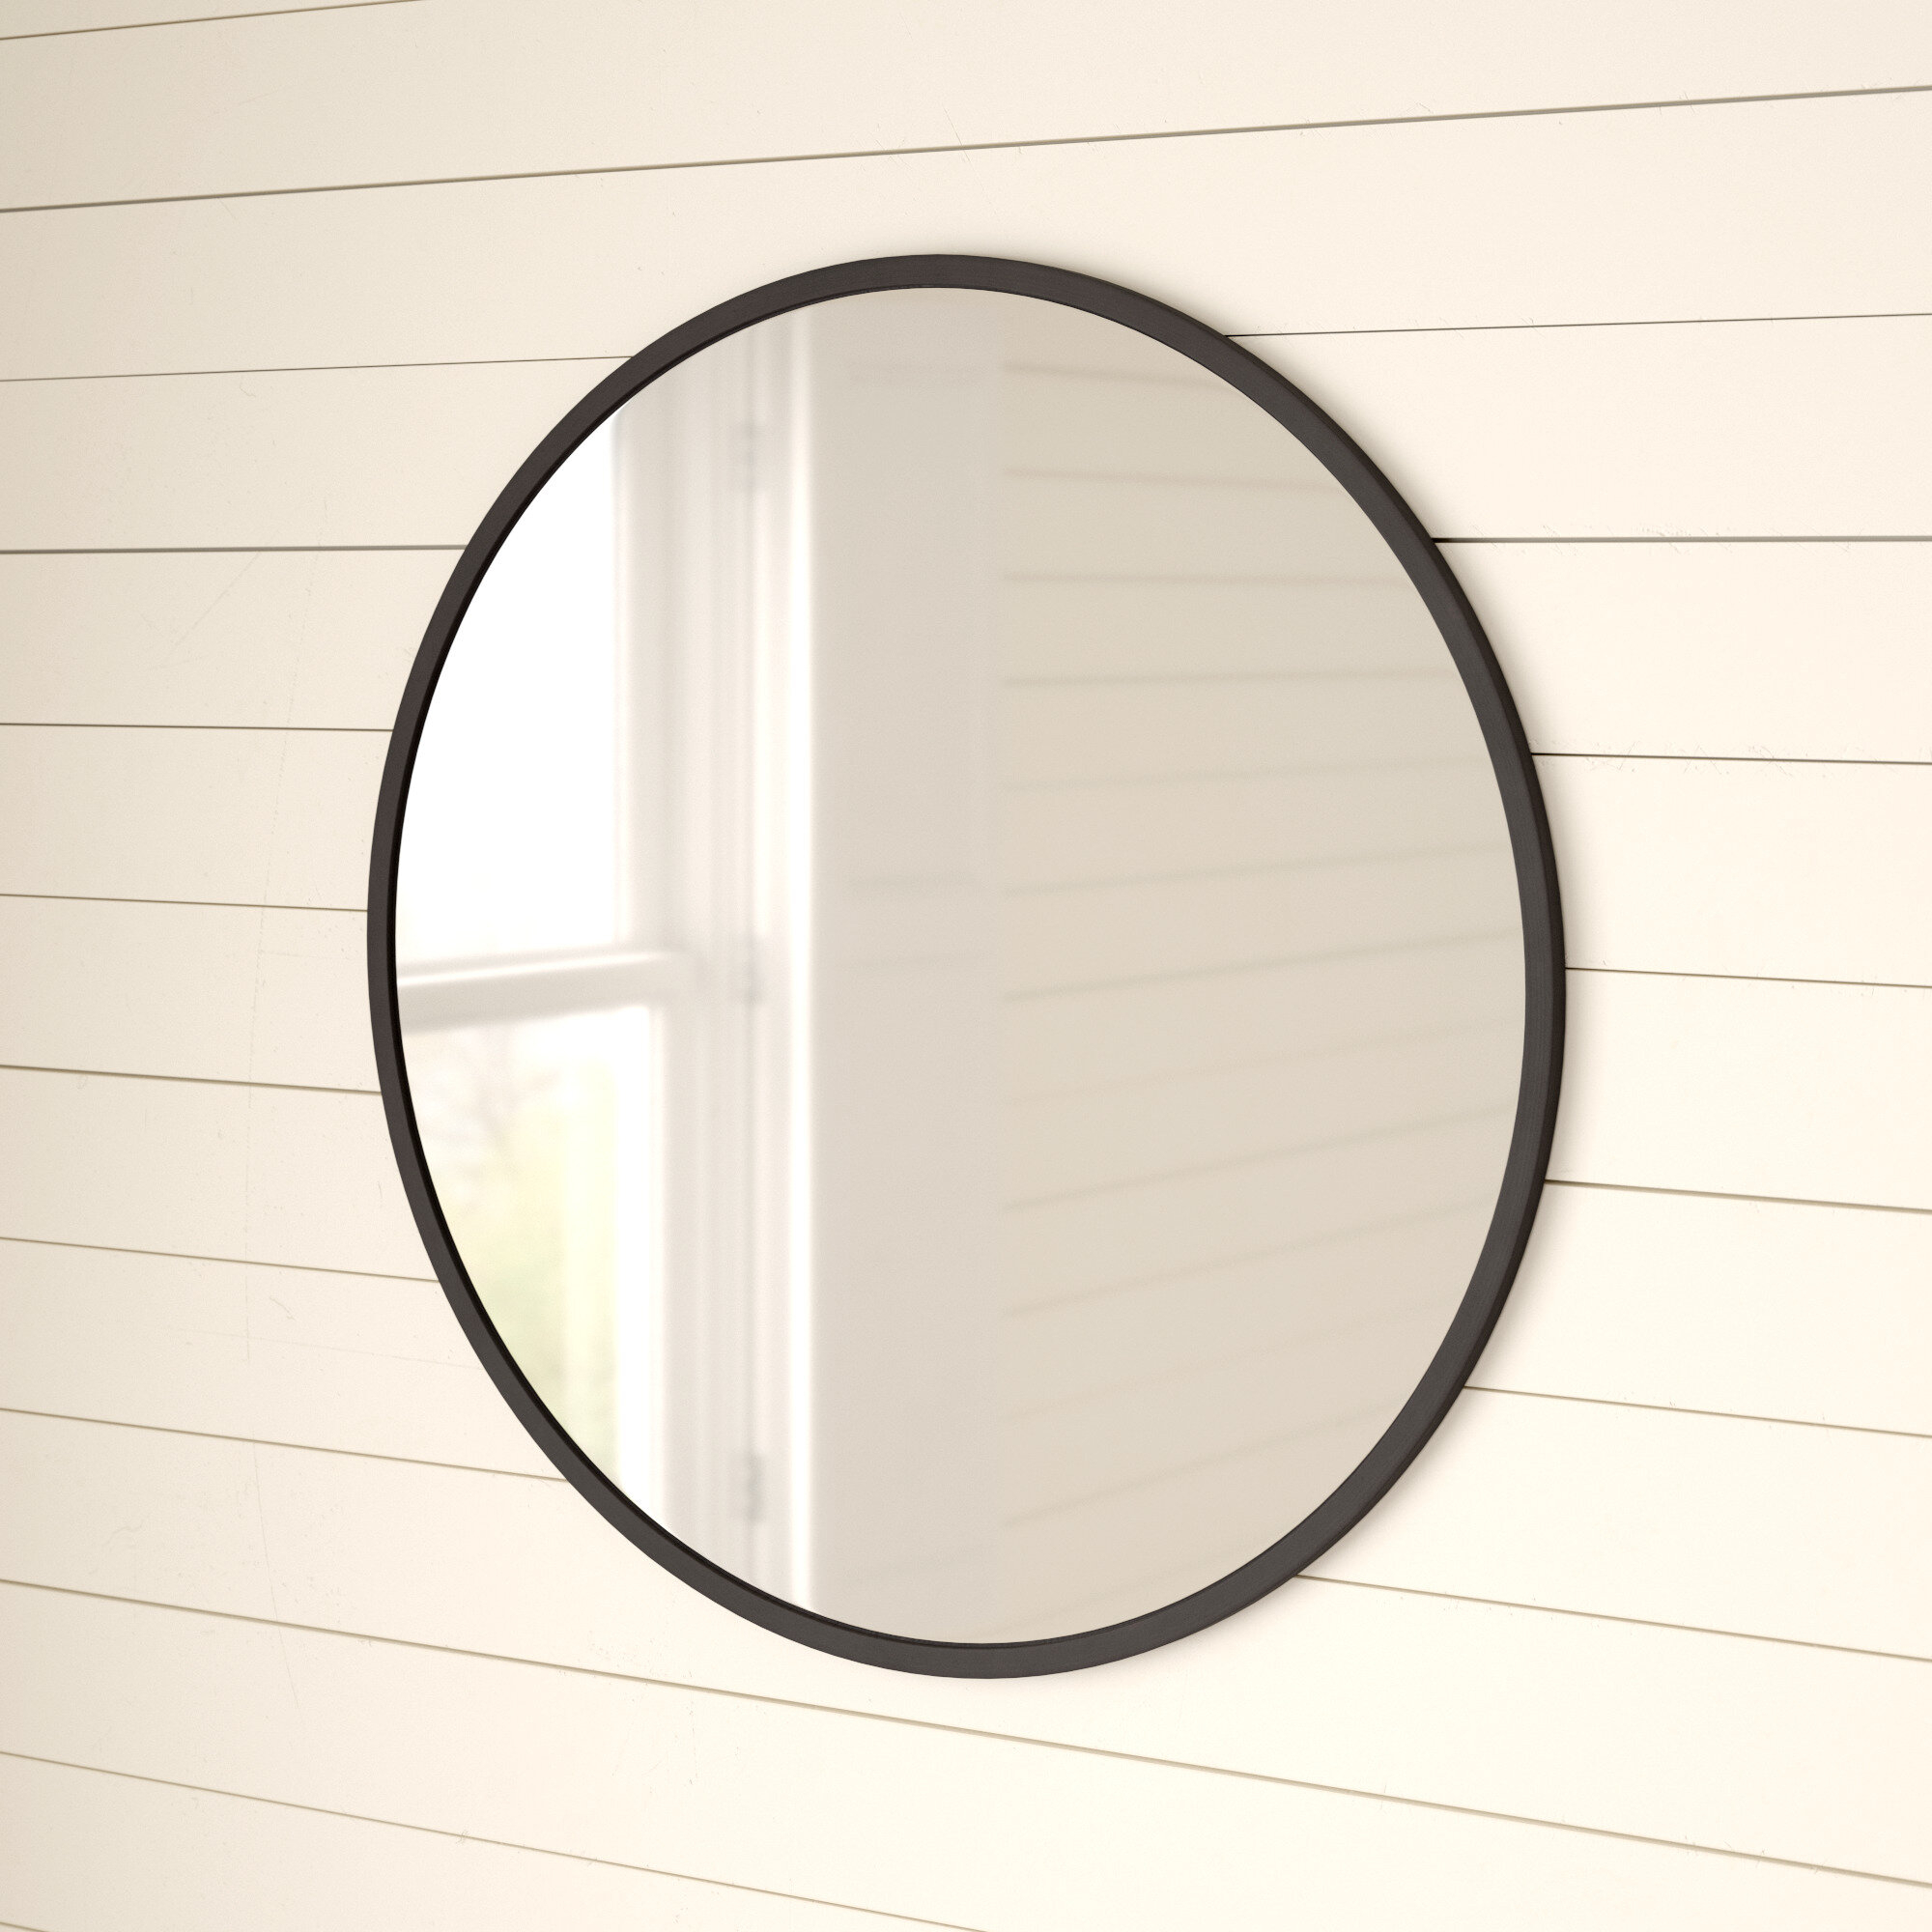 Umbra Hub Modern And Contemporary Accent Mirror With Hub Modern And Contemporary Accent Mirrors (View 28 of 30)